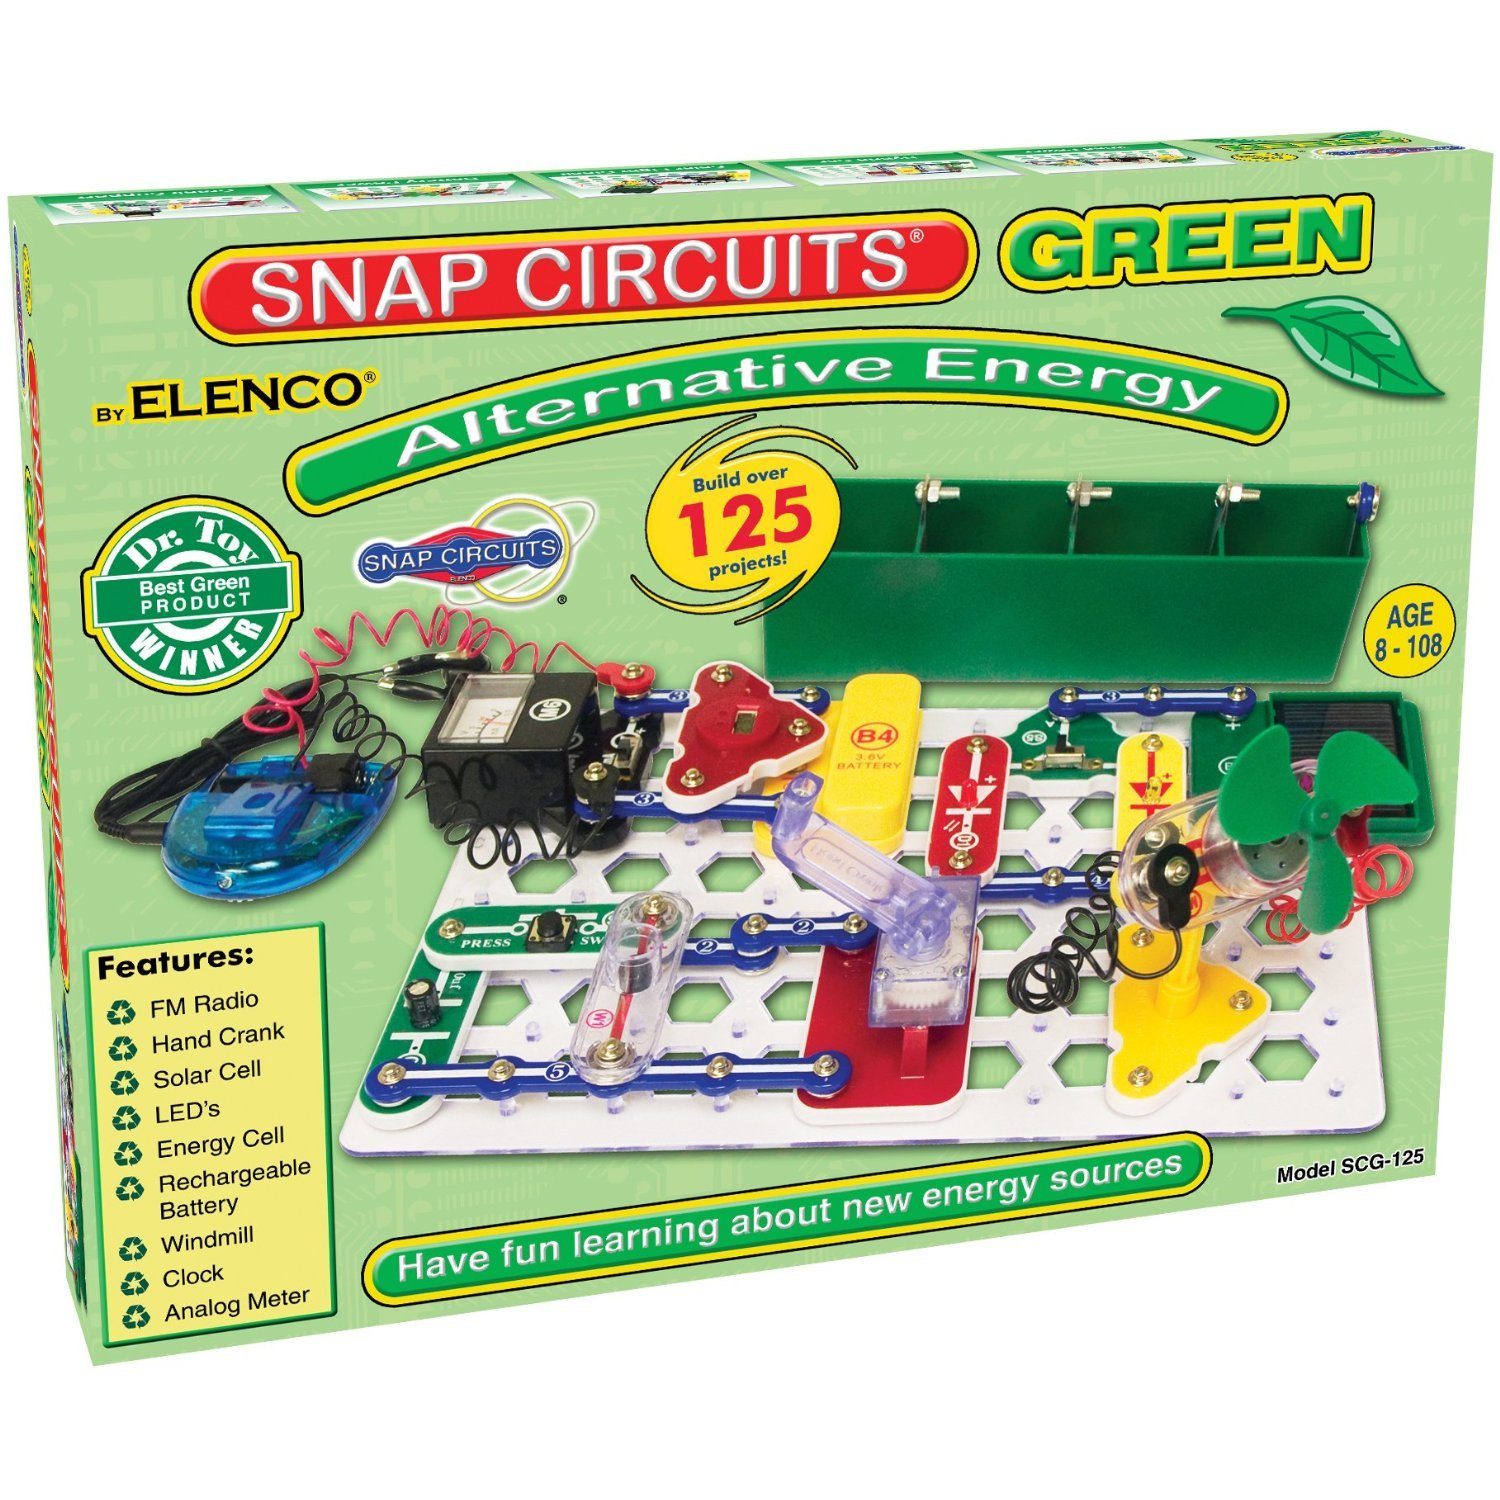 Snap Circuits Alternative Energy Green Electronics Circuit Vs Parallel For Kids Using The Above As An Exploration In Kit Over 125 Stem Projects 4 Color Project Manual 40